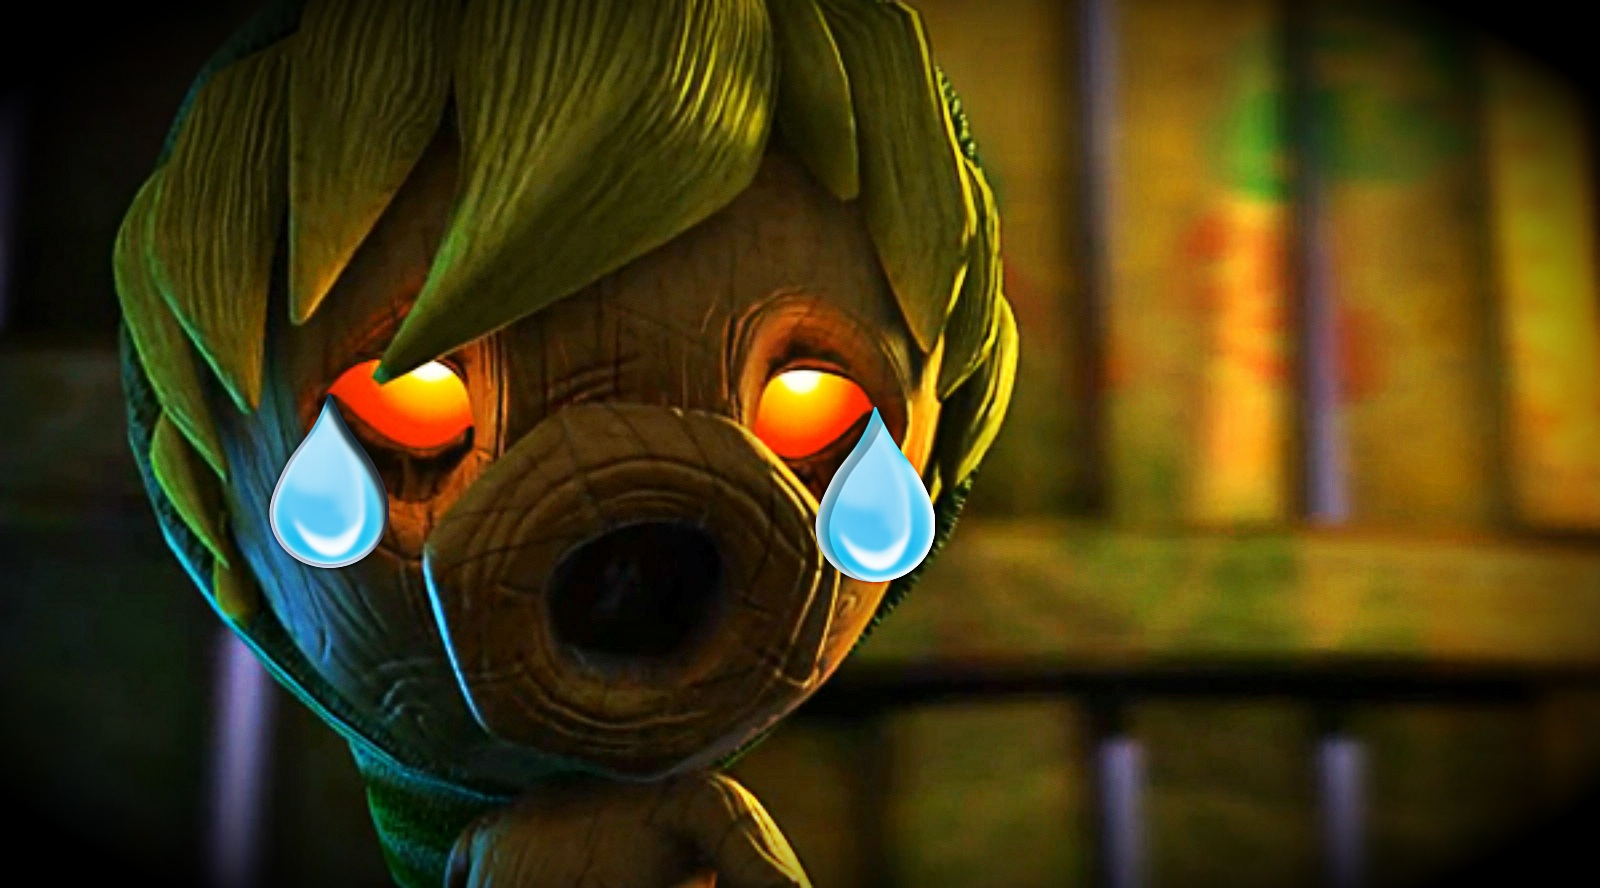 With Zelda U and Wind Waker HD Coming, There's No Hope For A Majora's Mask Remake